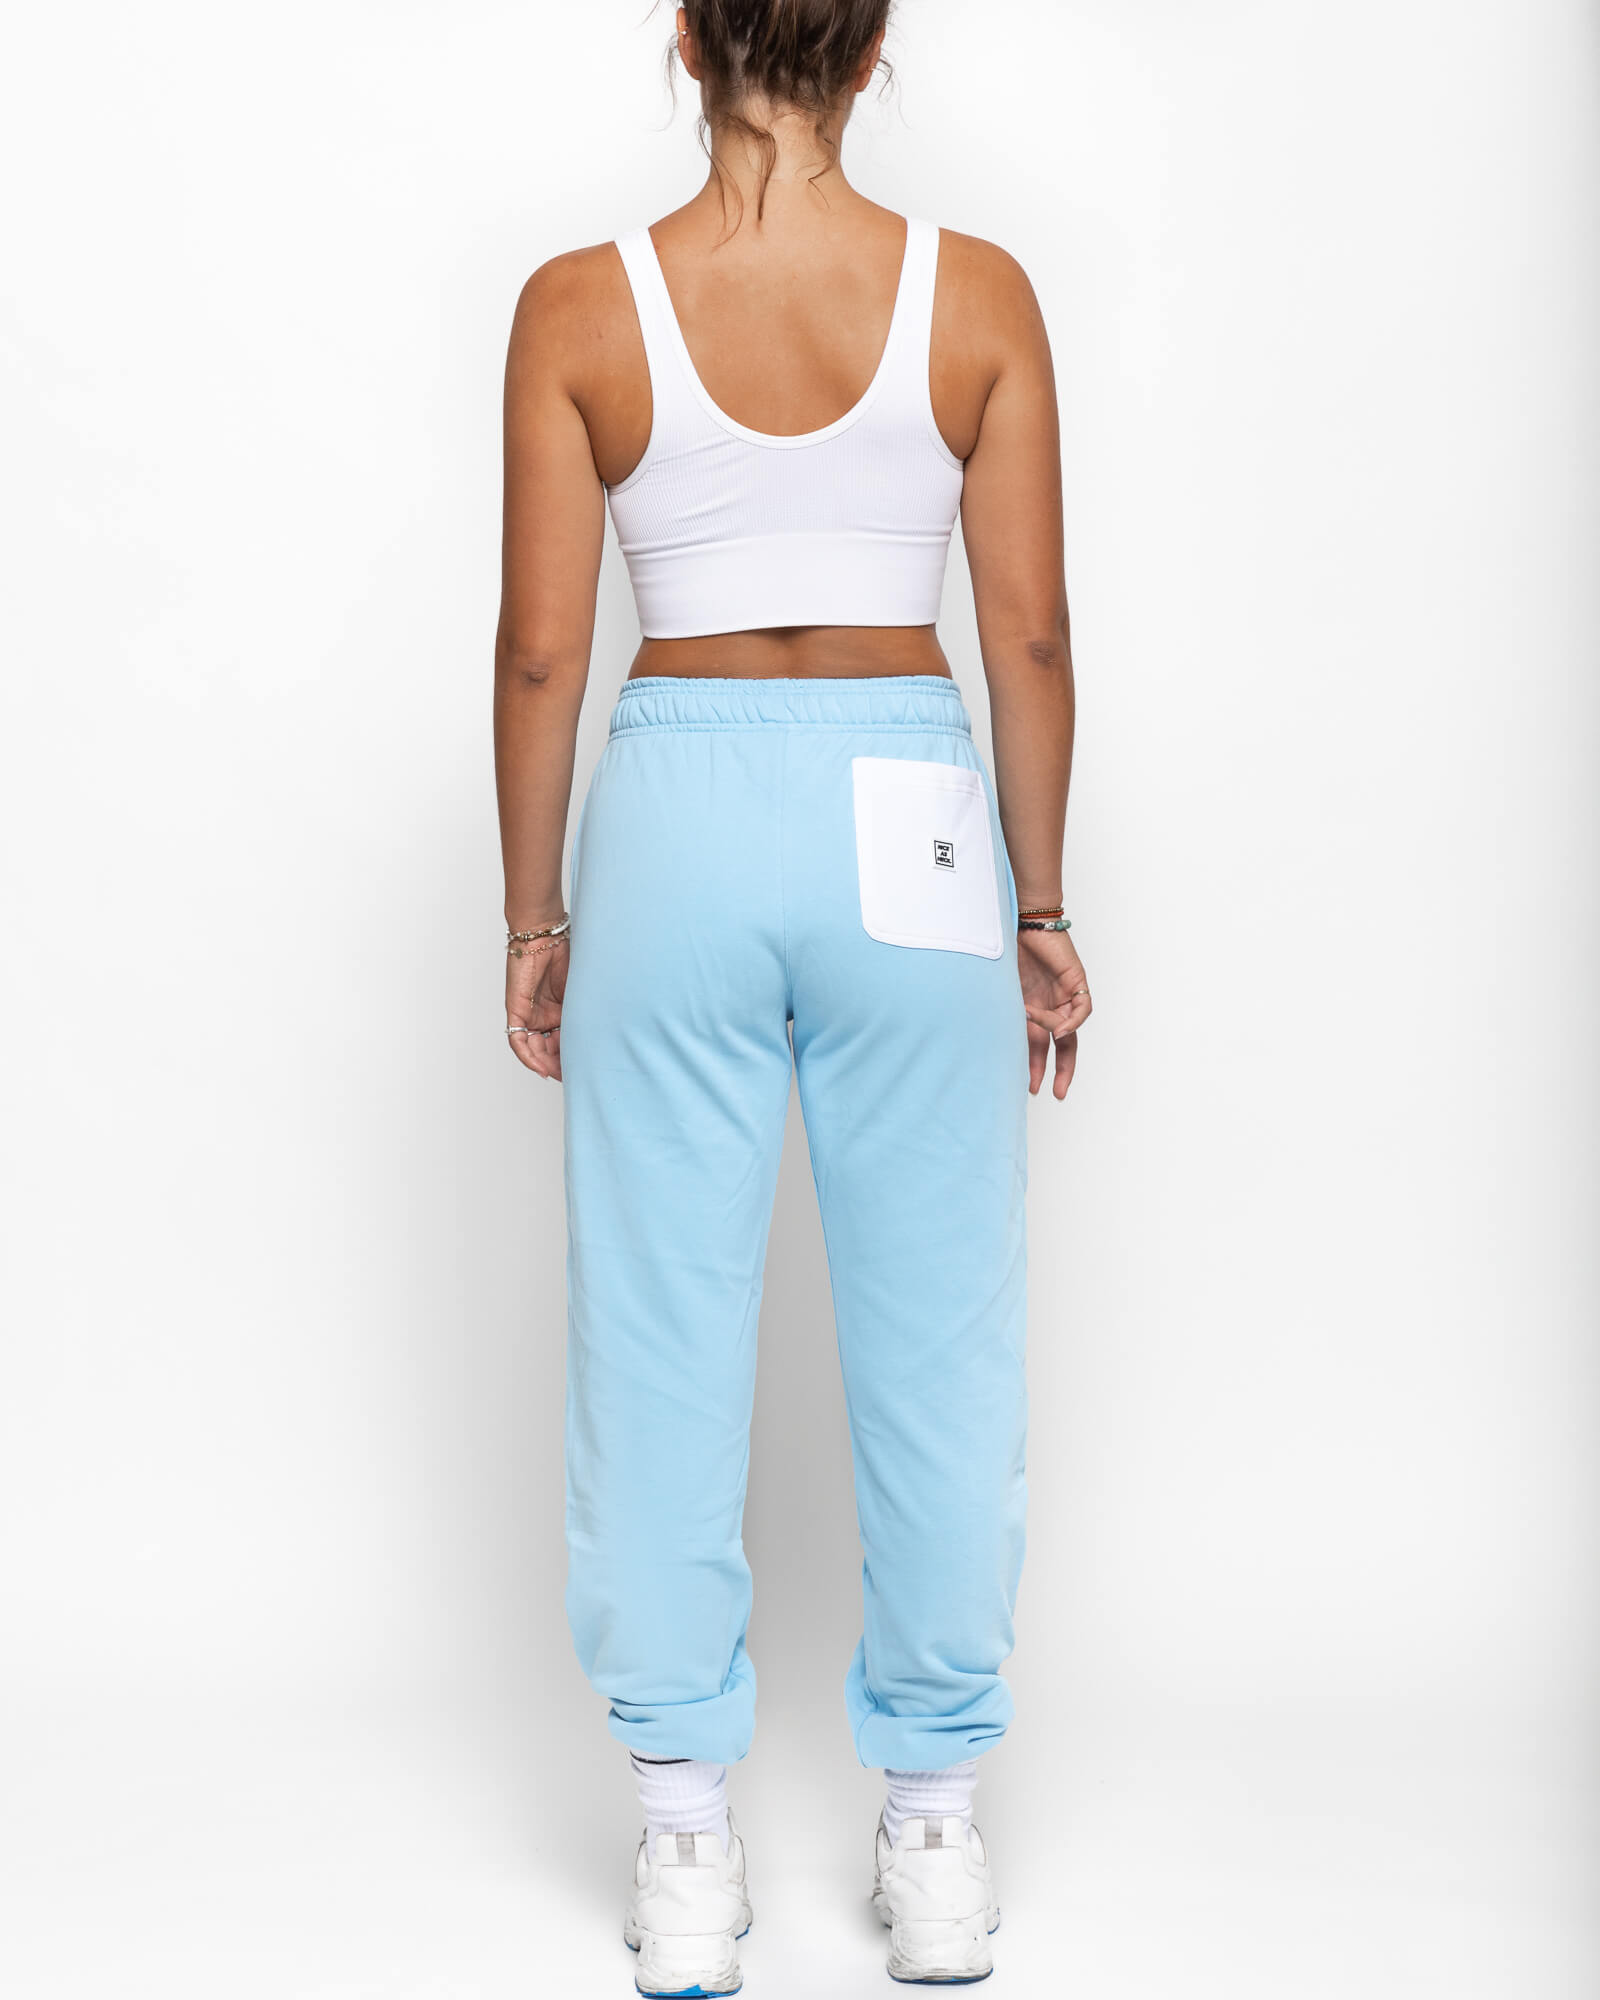 back view of a female model wearing the blue sunday sweats with a white tank top